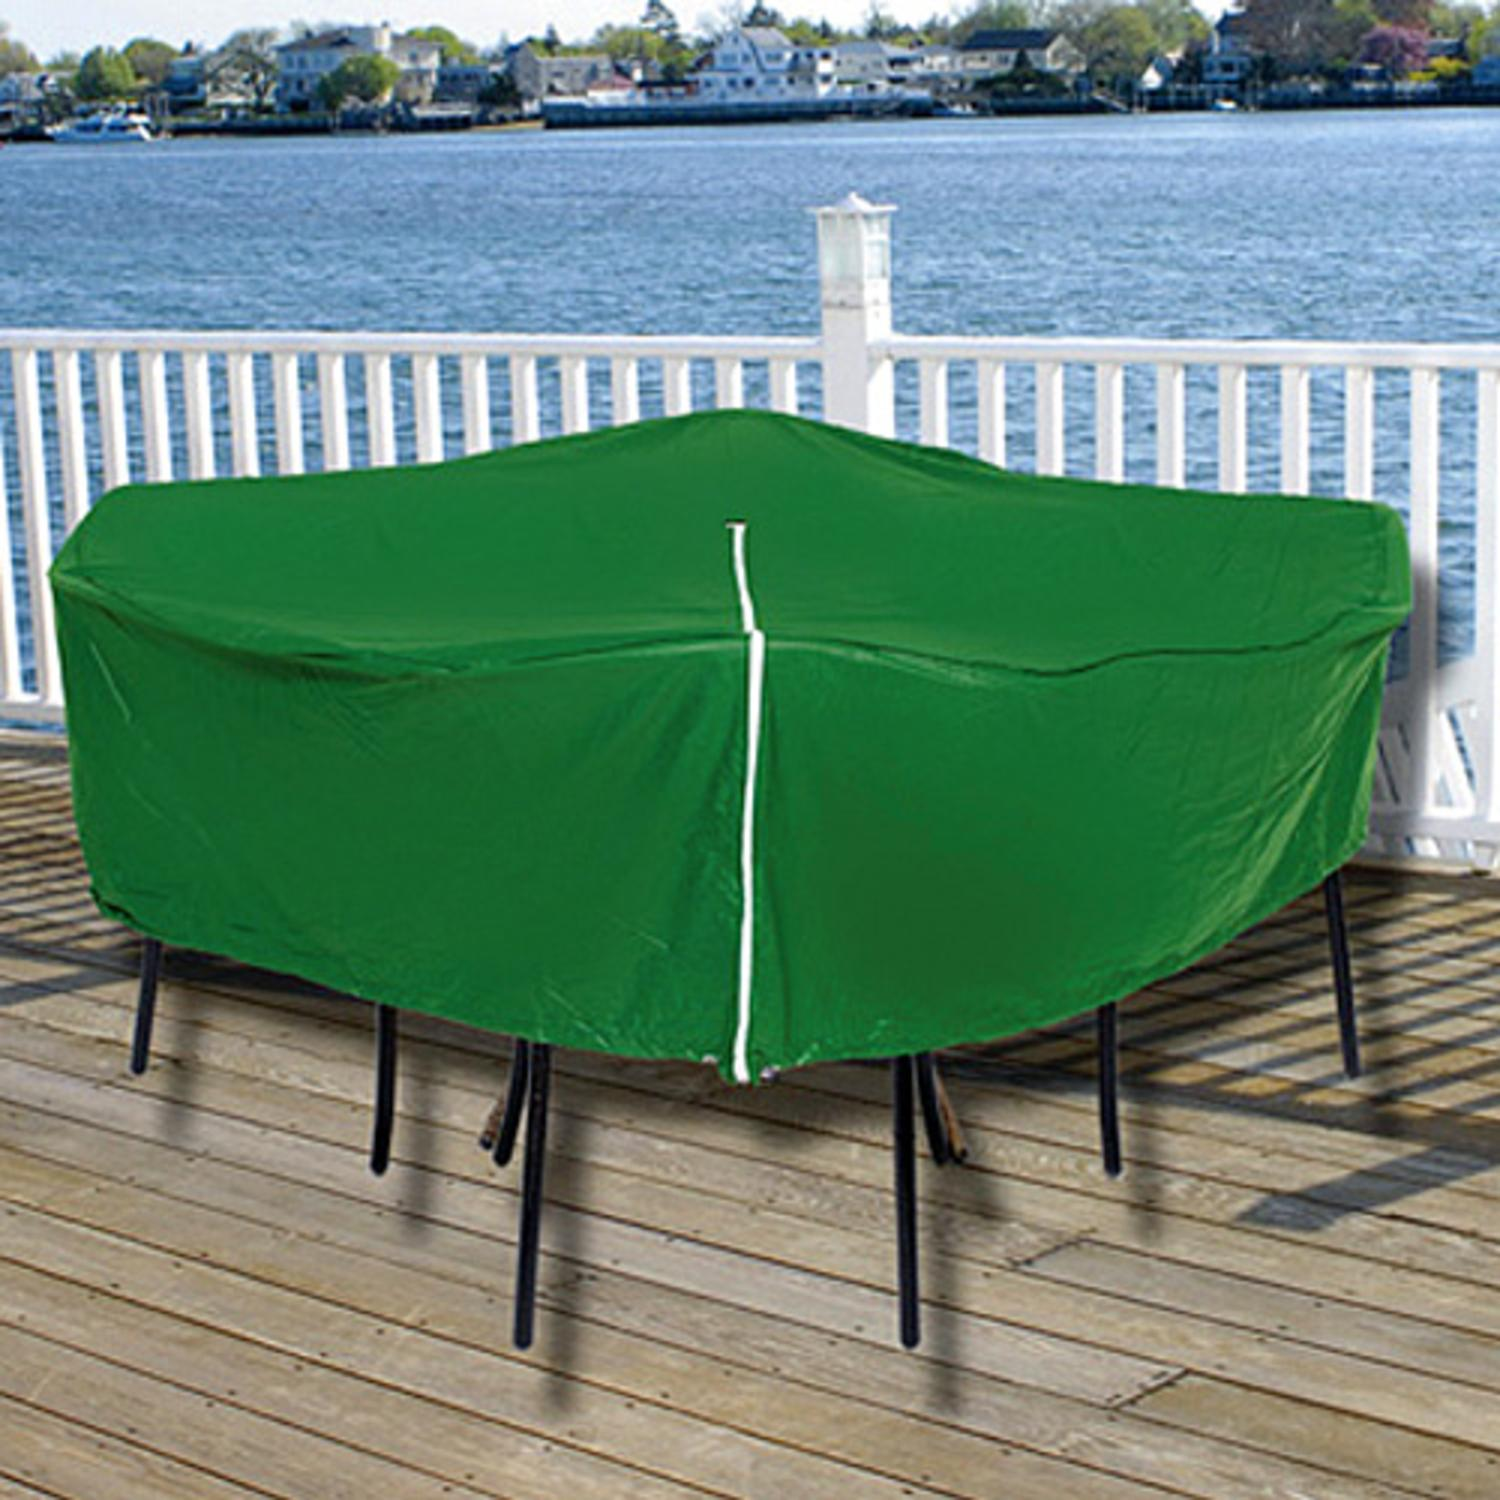 Durable Round Outdoor Patio Set Vinyl Furniture Cover - Green